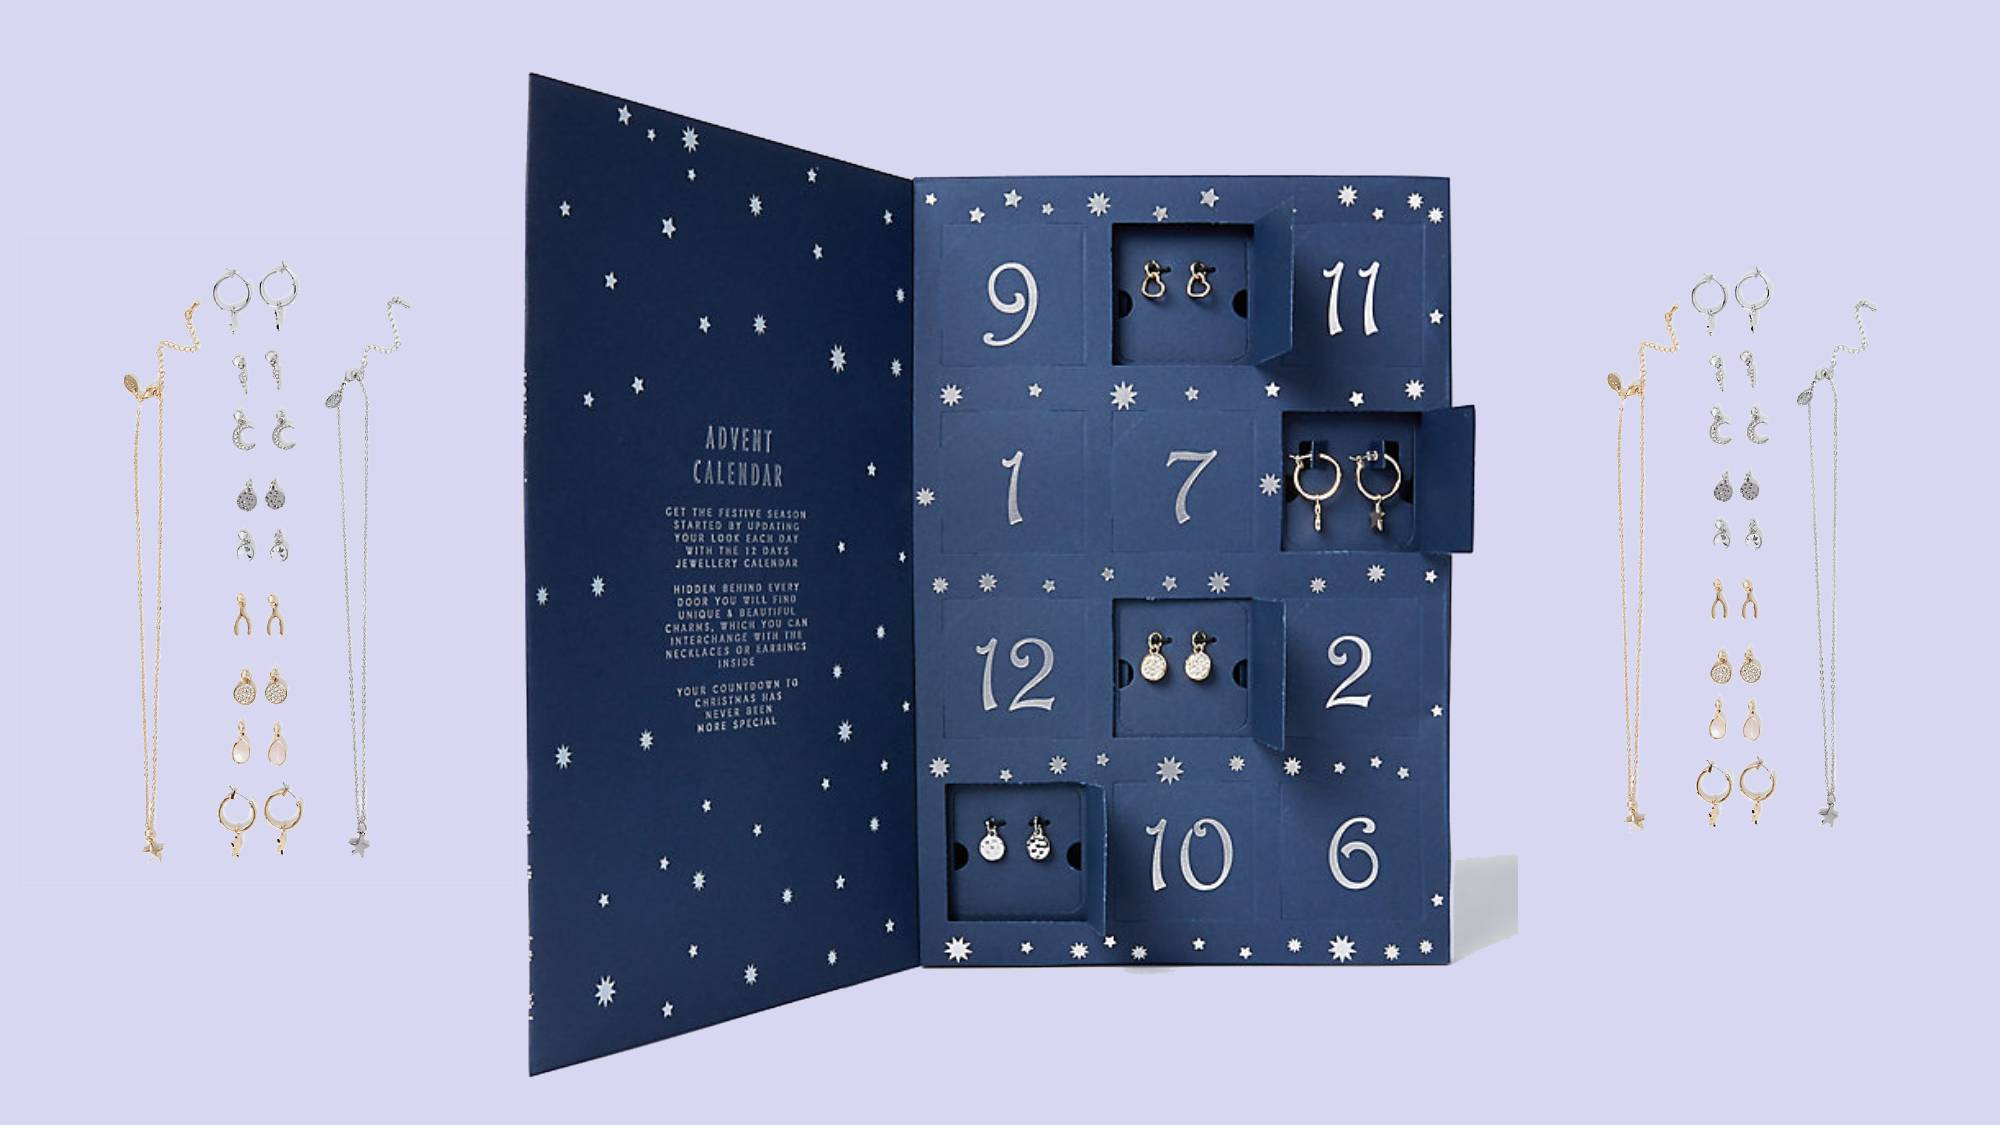 M&S has released a jewellery advent calendar and it looks dreamy